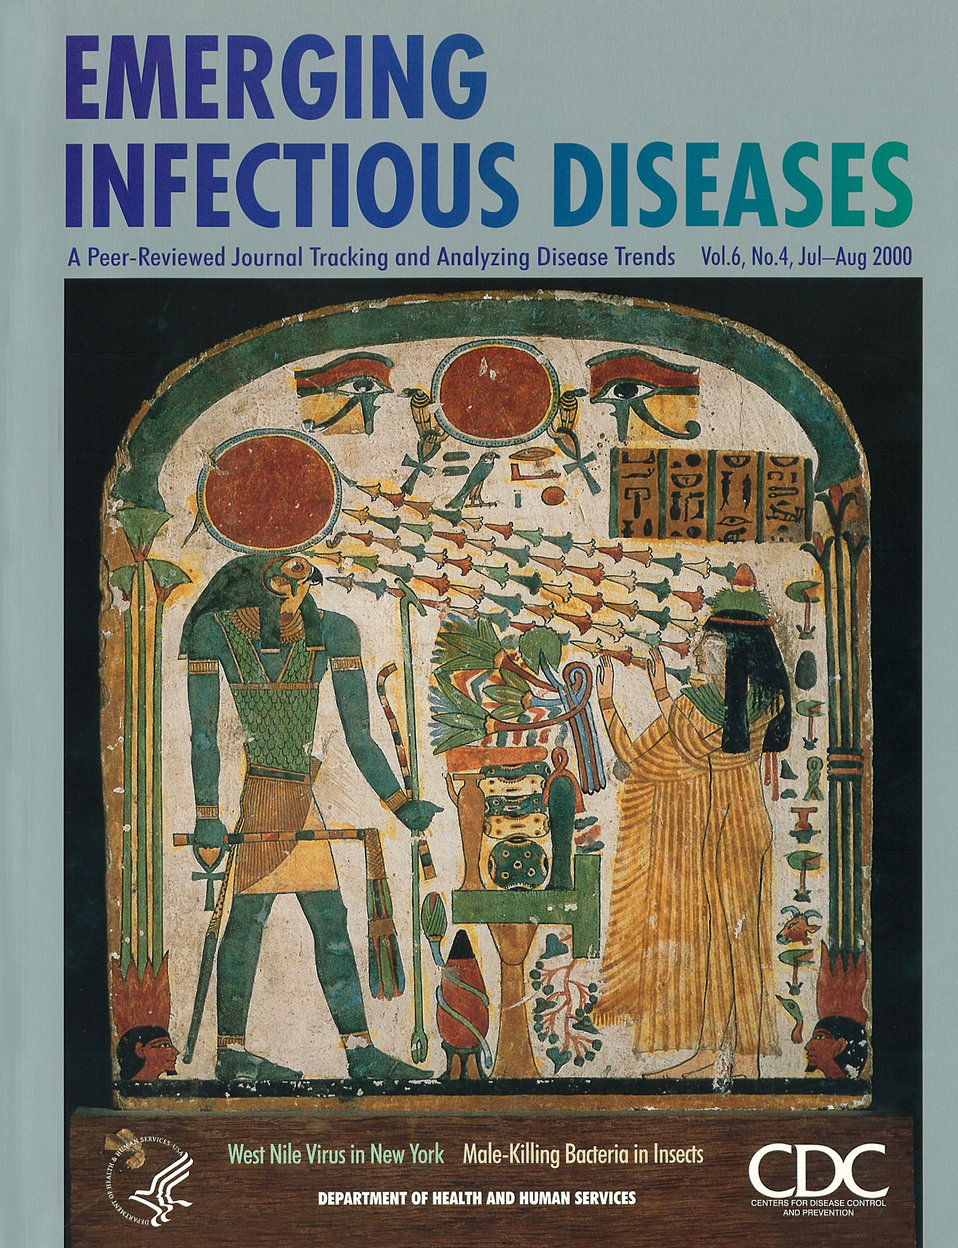 Emerging Infectious Diseases (EID) cover artwork for Volume 6, Number 4, July-August 2000 issue.